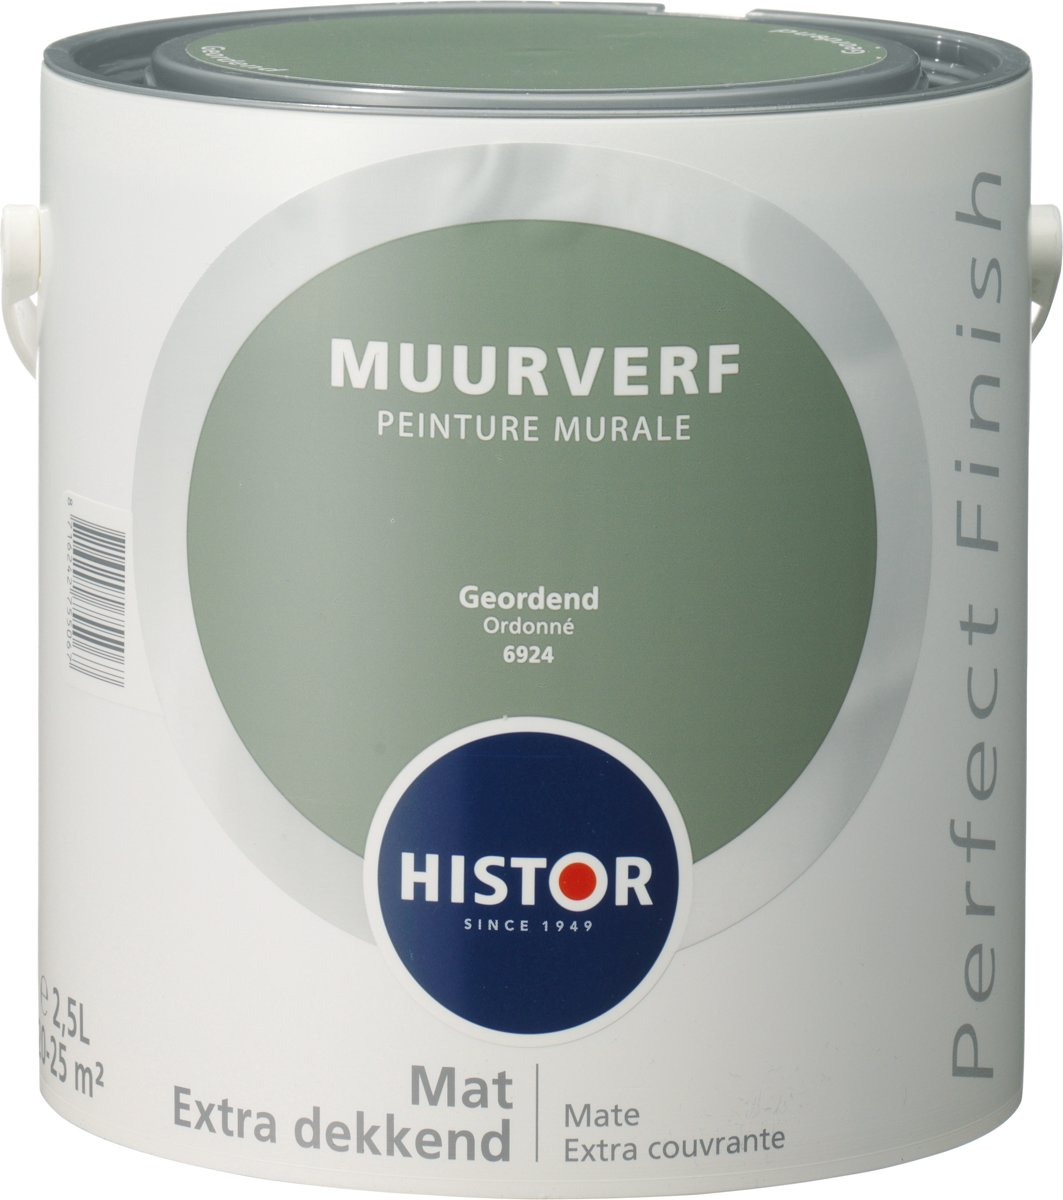 Histor Blauw Histor Perfect Finish Muurverf Mat 2 5 Liter Geordend